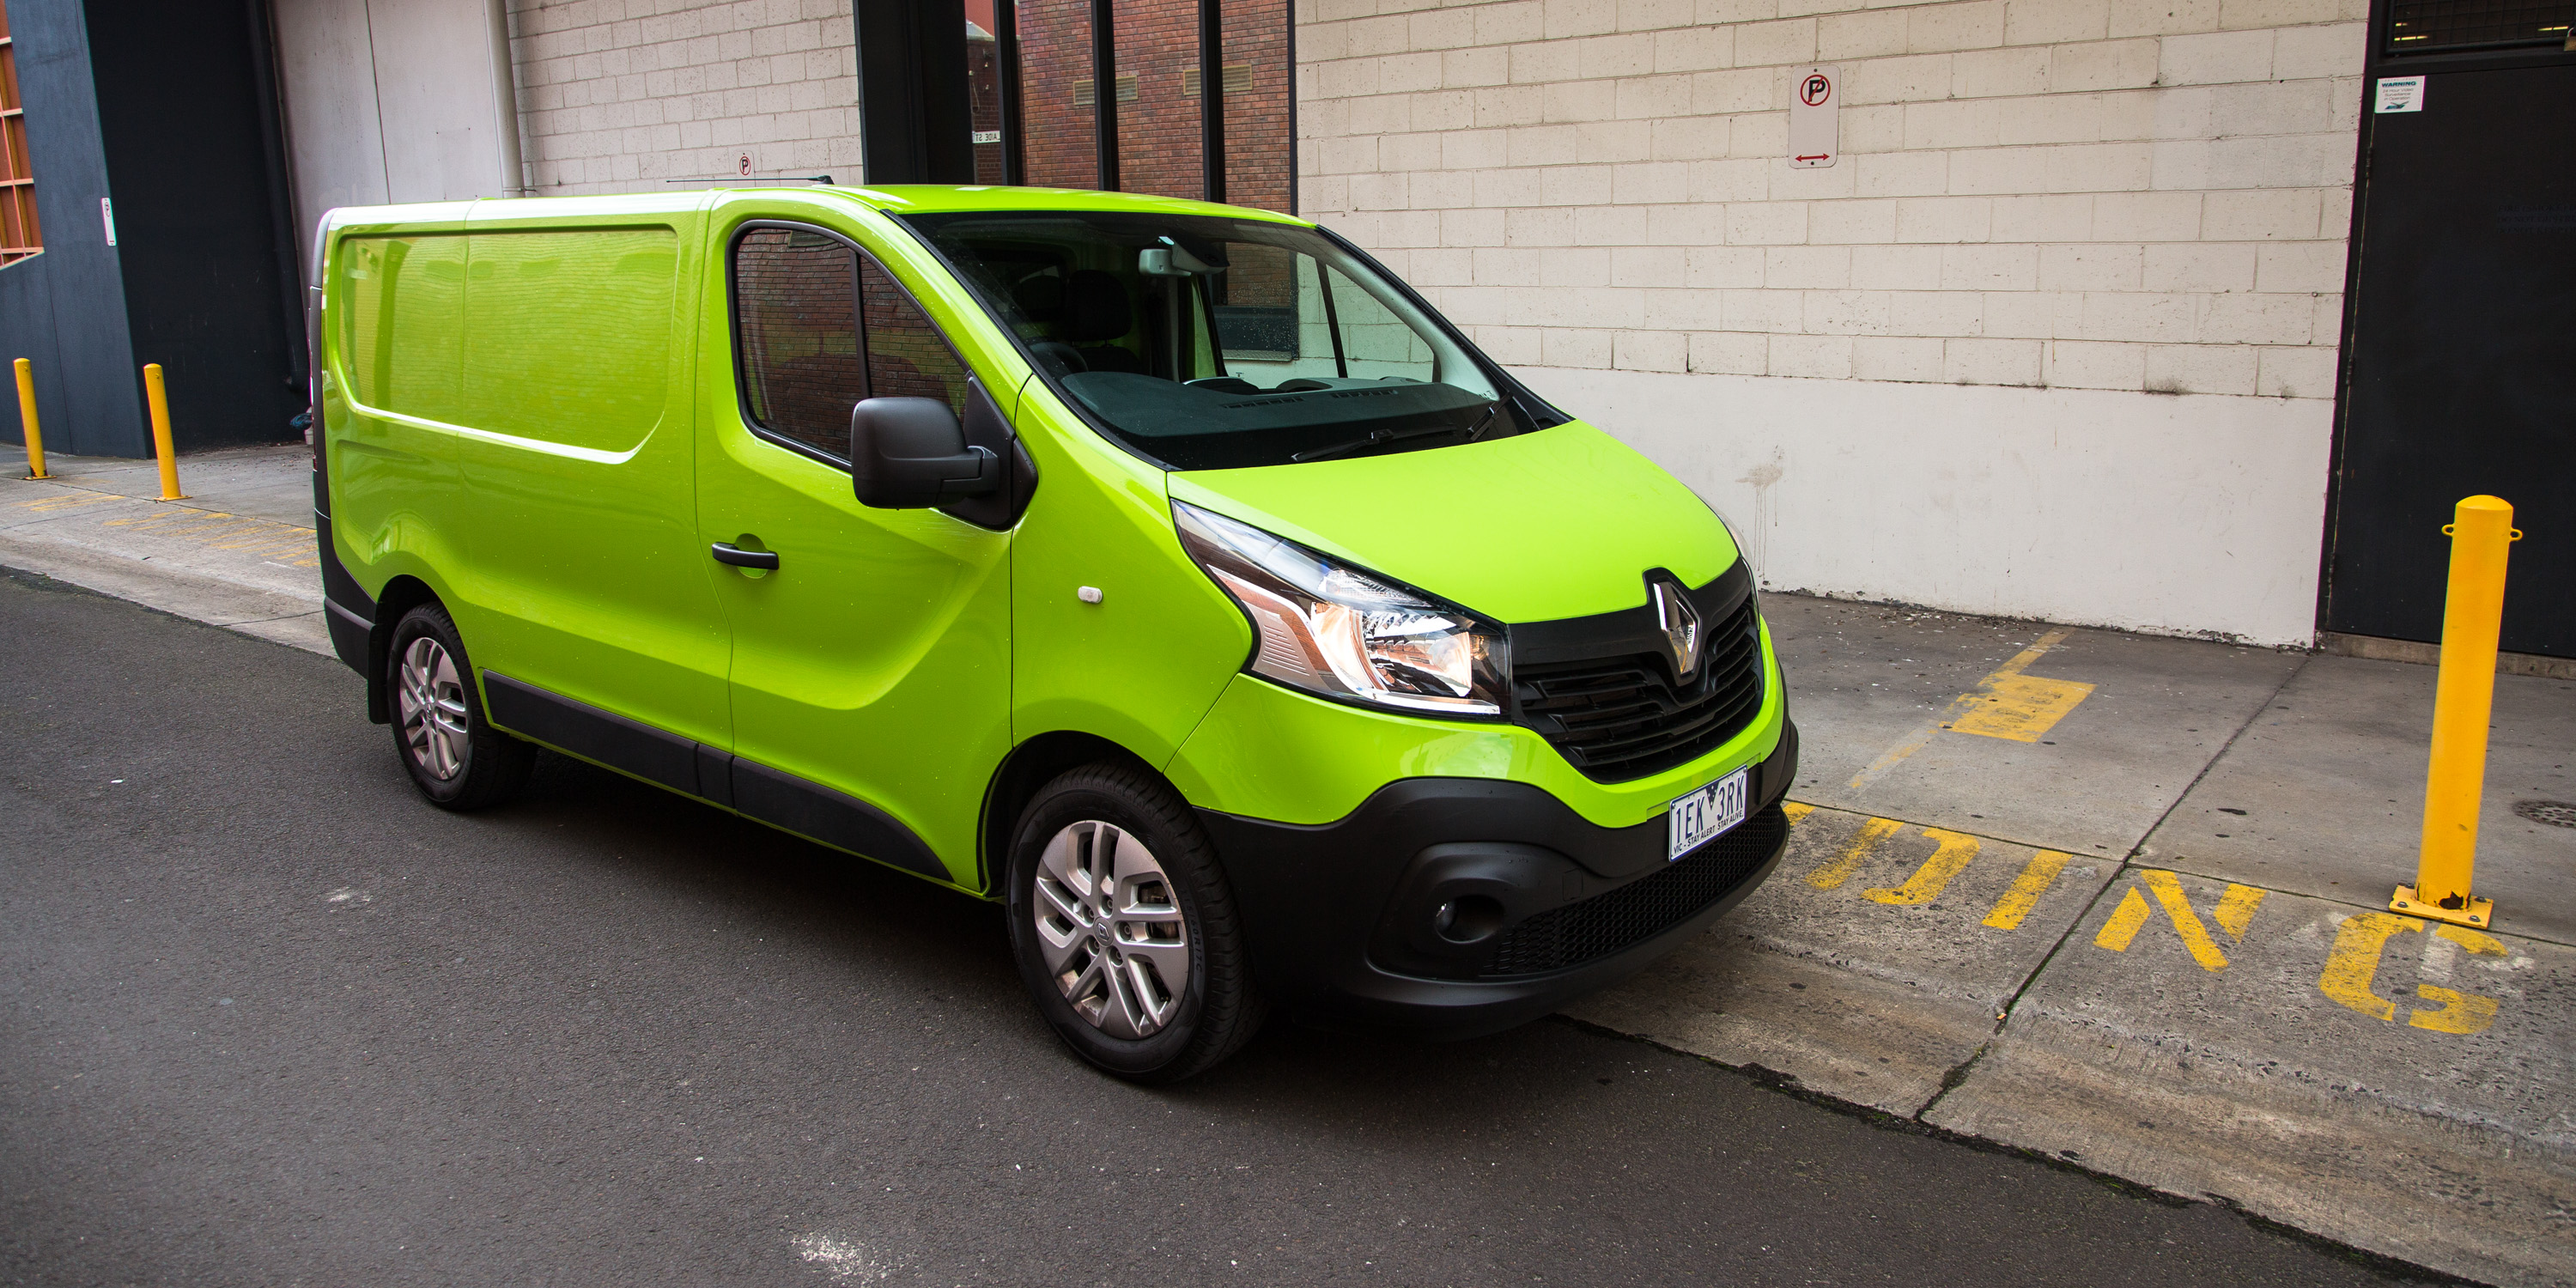 2015 renault trafic l1h1 twin turbo review photos caradvice. Black Bedroom Furniture Sets. Home Design Ideas